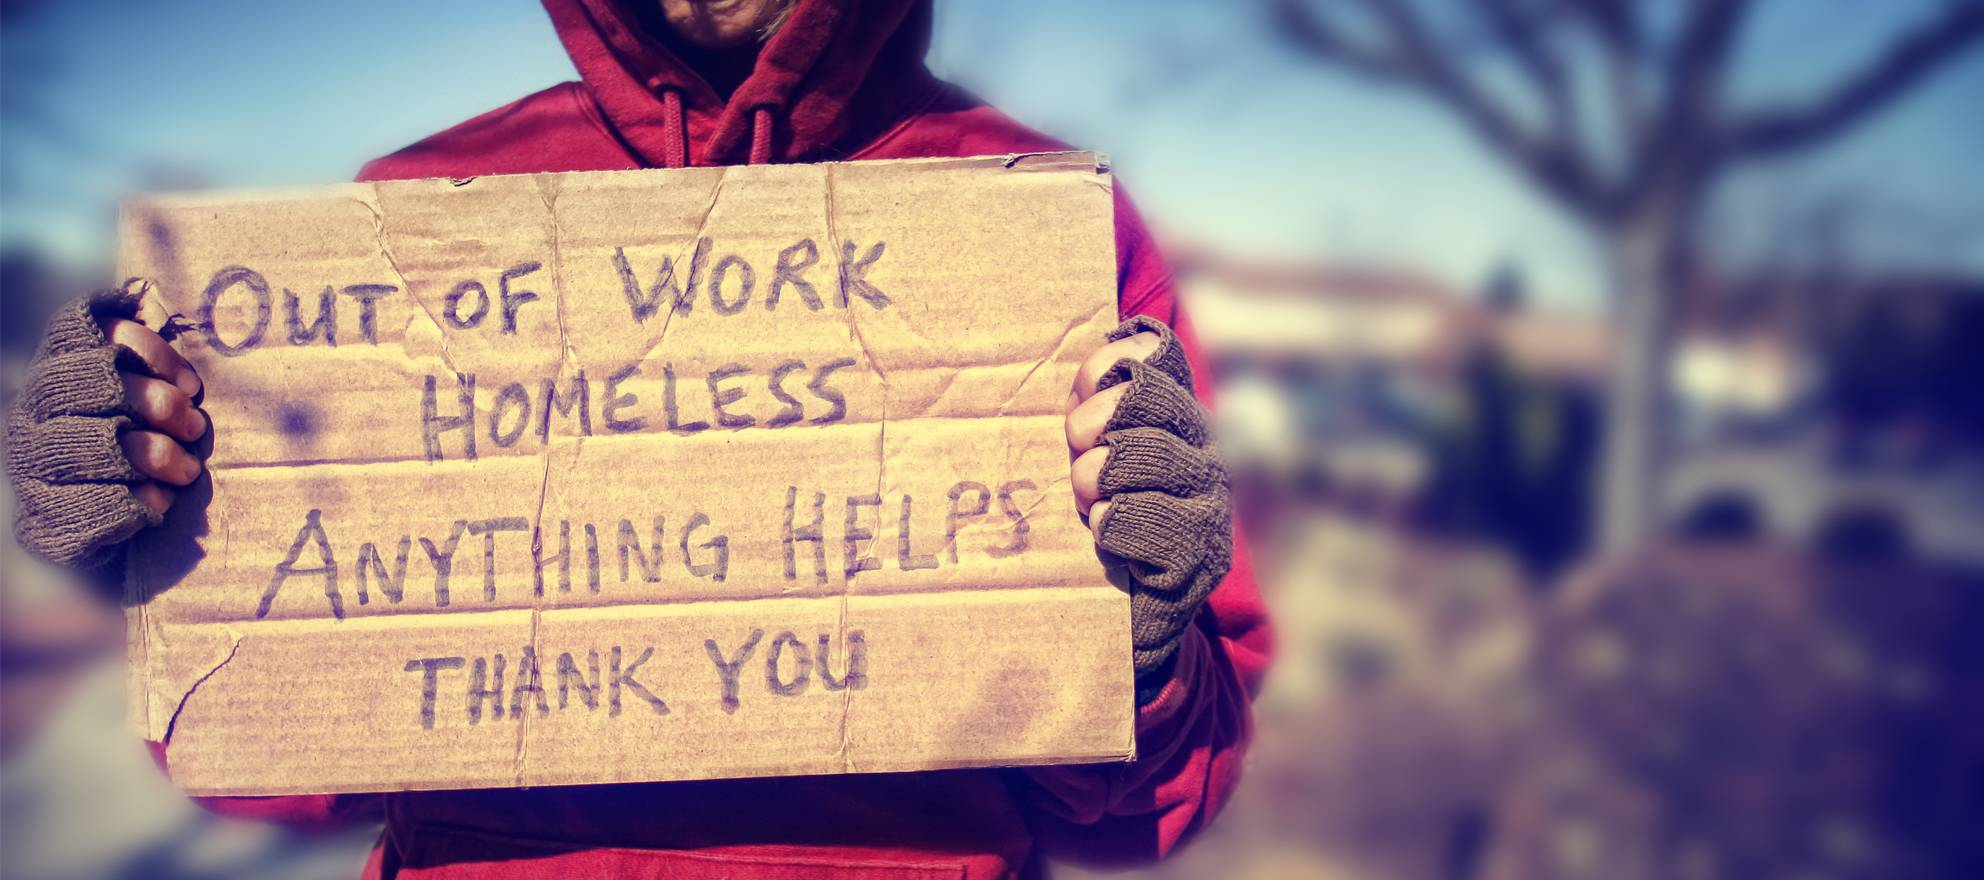 Denver program gives landlords and property managers opportunity to help out homeless